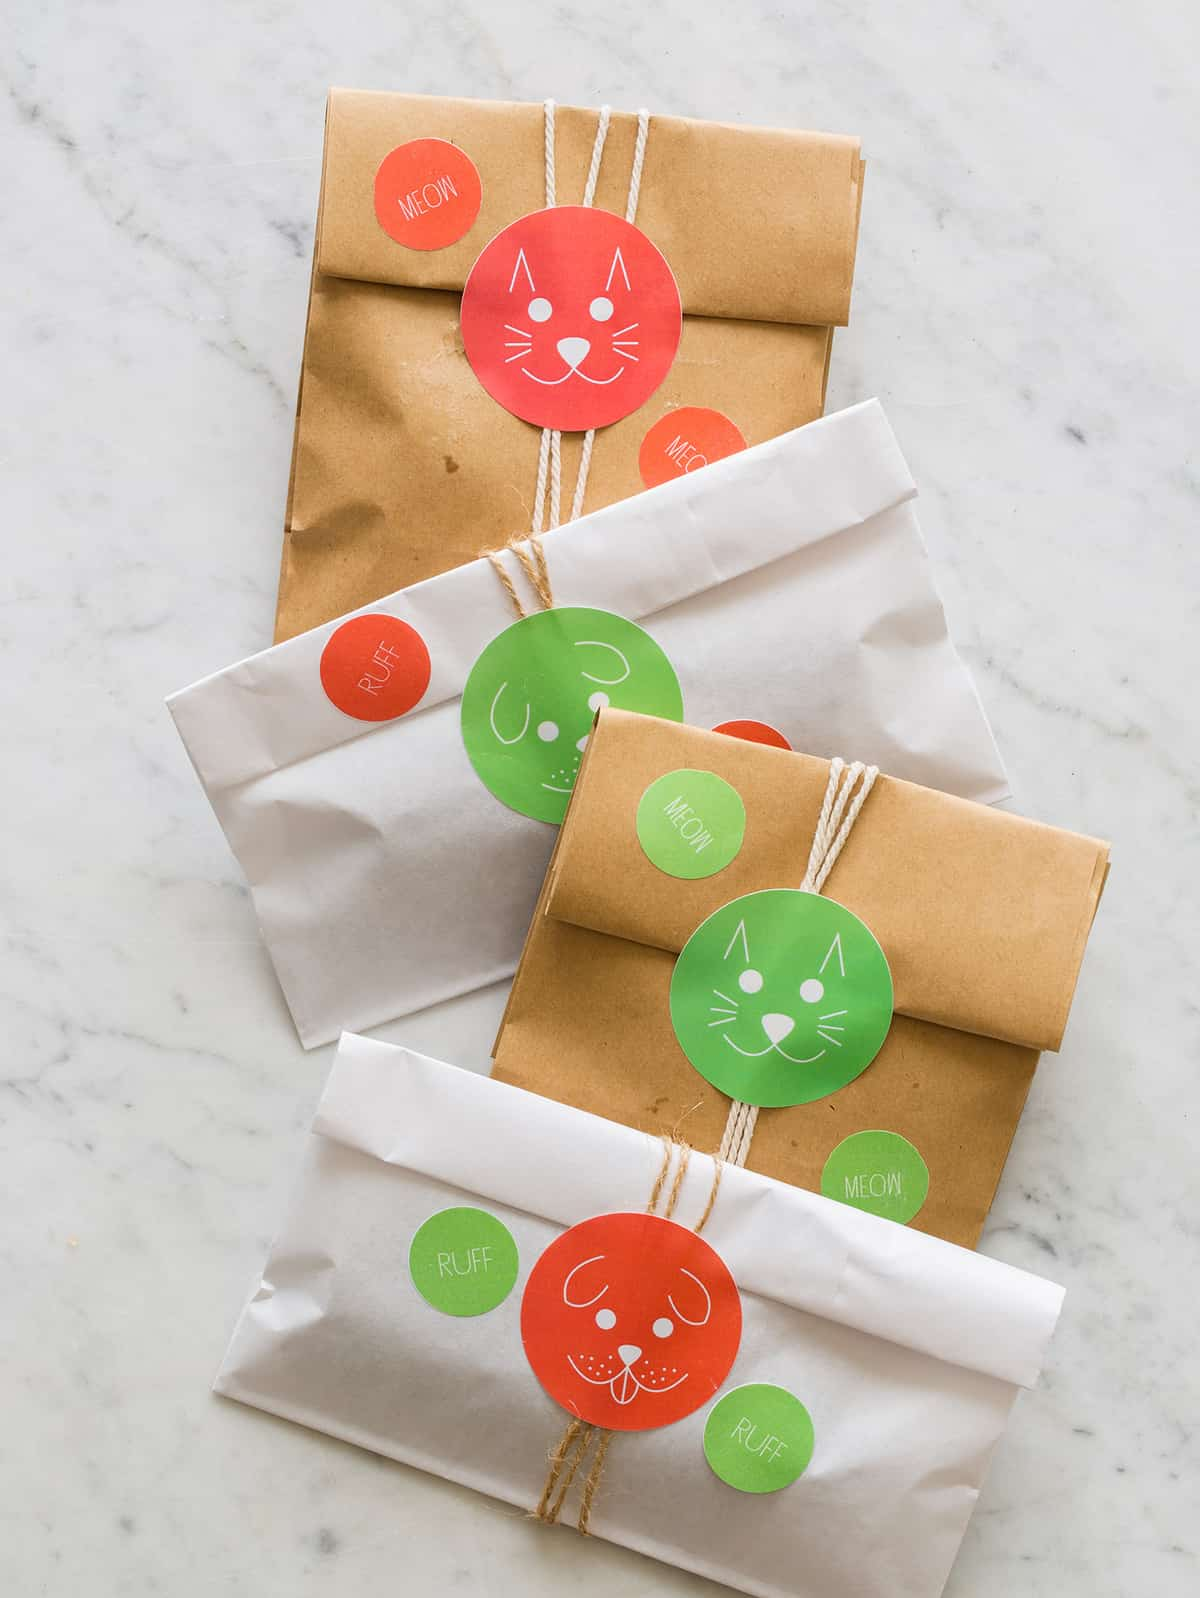 A close up of several wrapped pet presents.